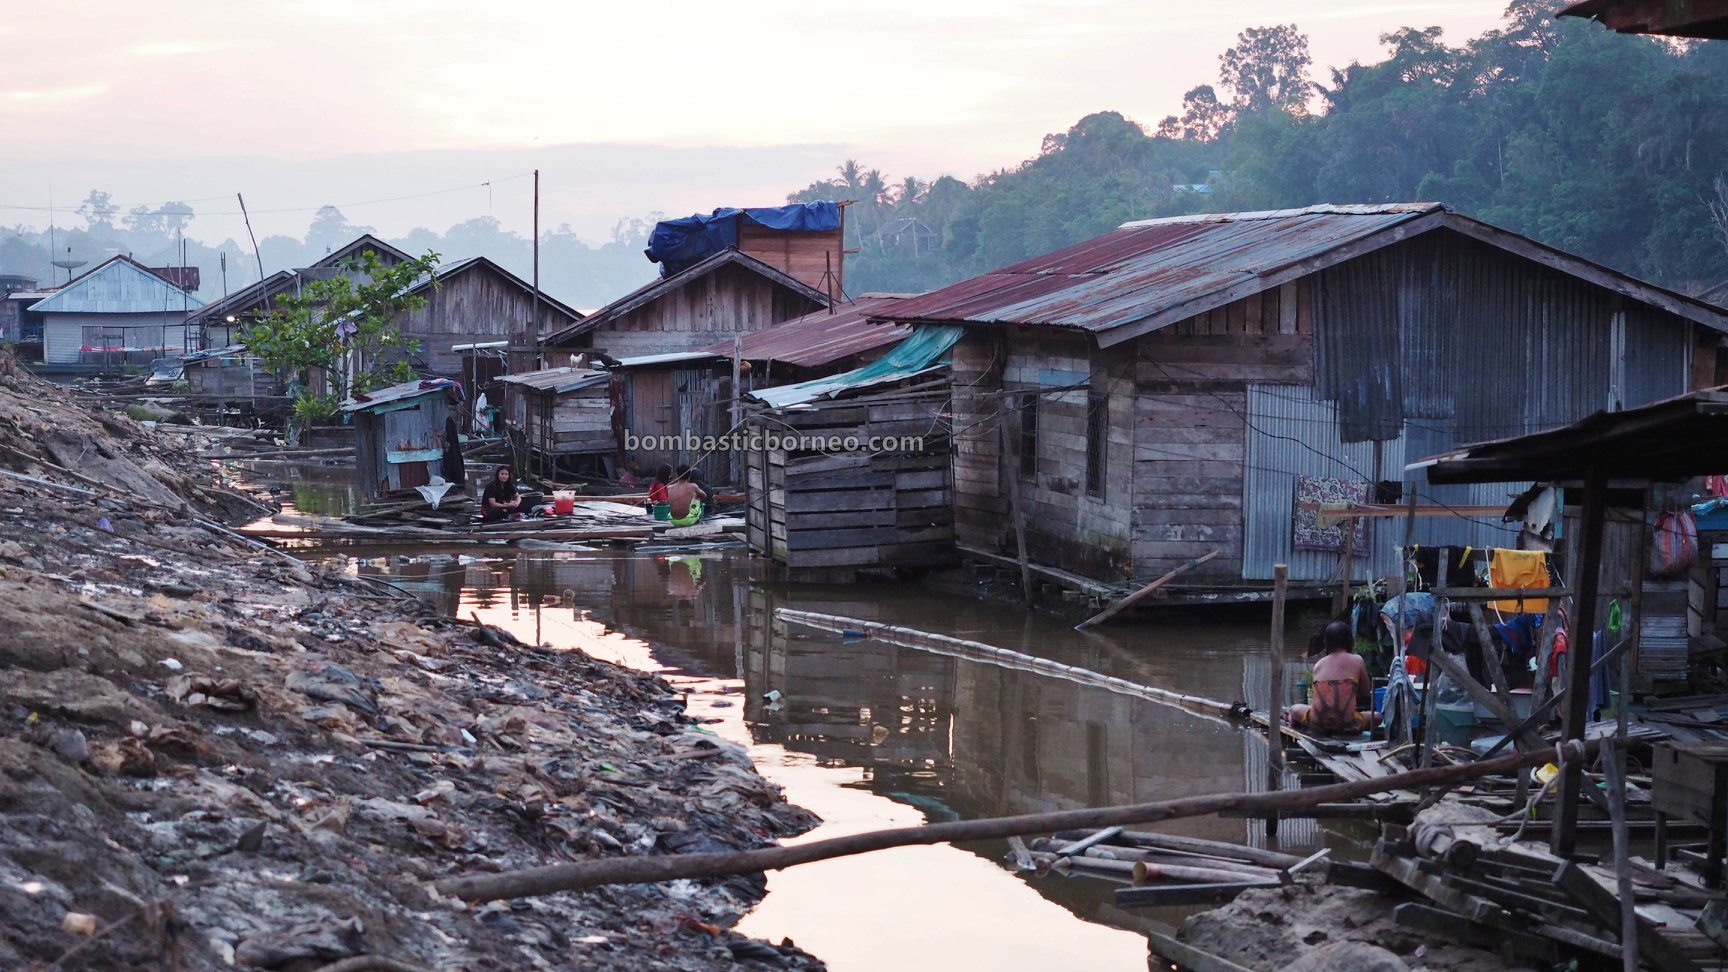 rumah lanting, floating house, authentic, traditional, destination, Borneo, Indonesia, West Kalimantan, Sungai Melawi, Tourism, travel guide, Cross Border, 婆罗洲游踪, 西加里曼丹彬路水上之家, 默拉维河栏登